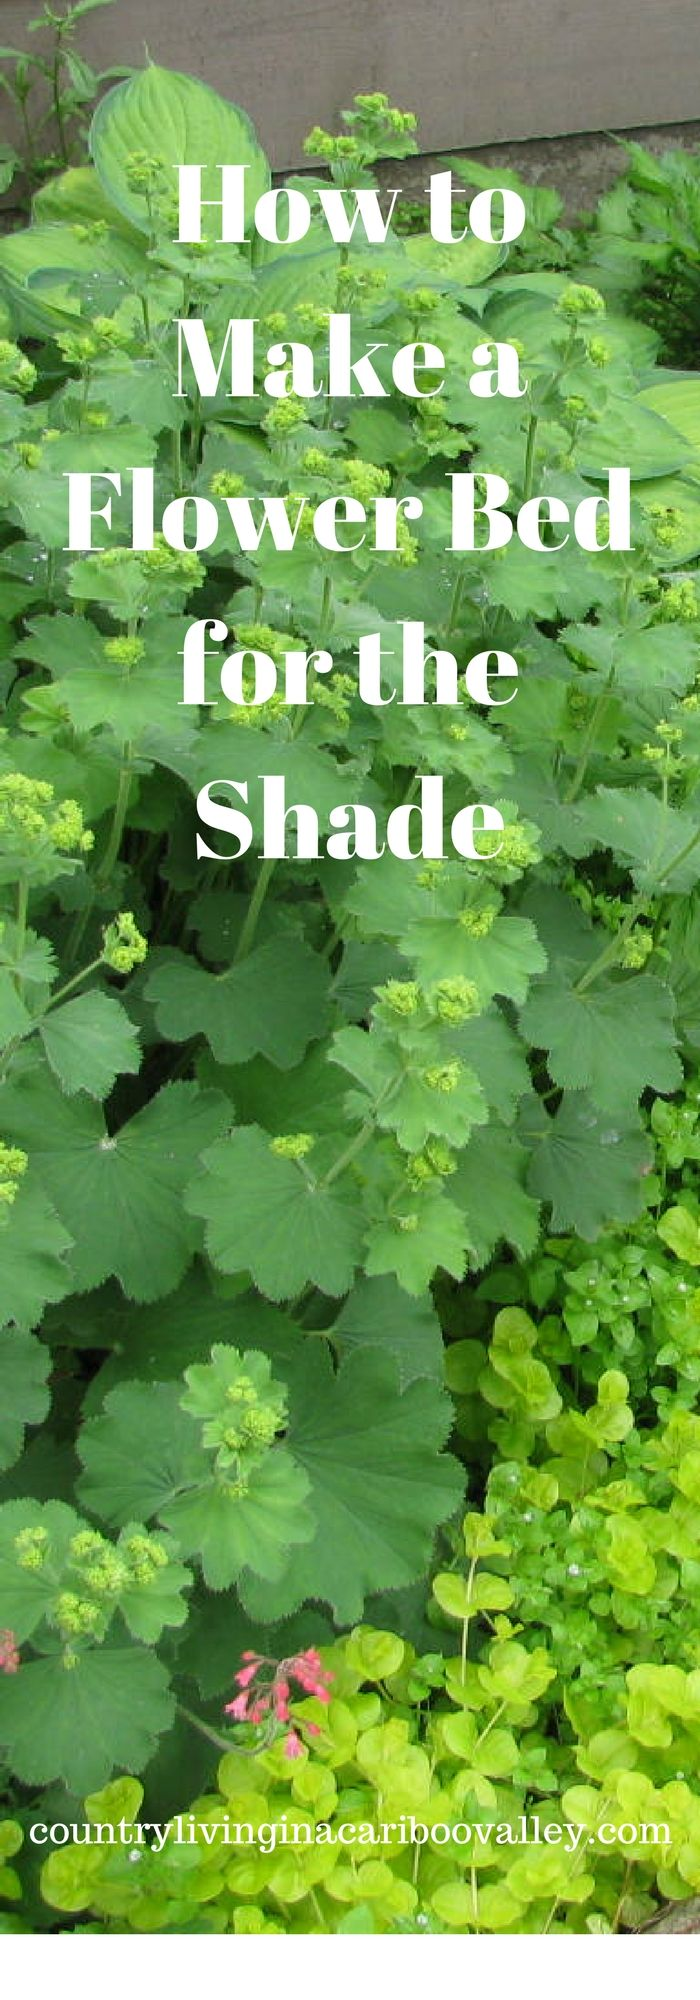 Create a low maintenance flower bed that will thrive in the shade!